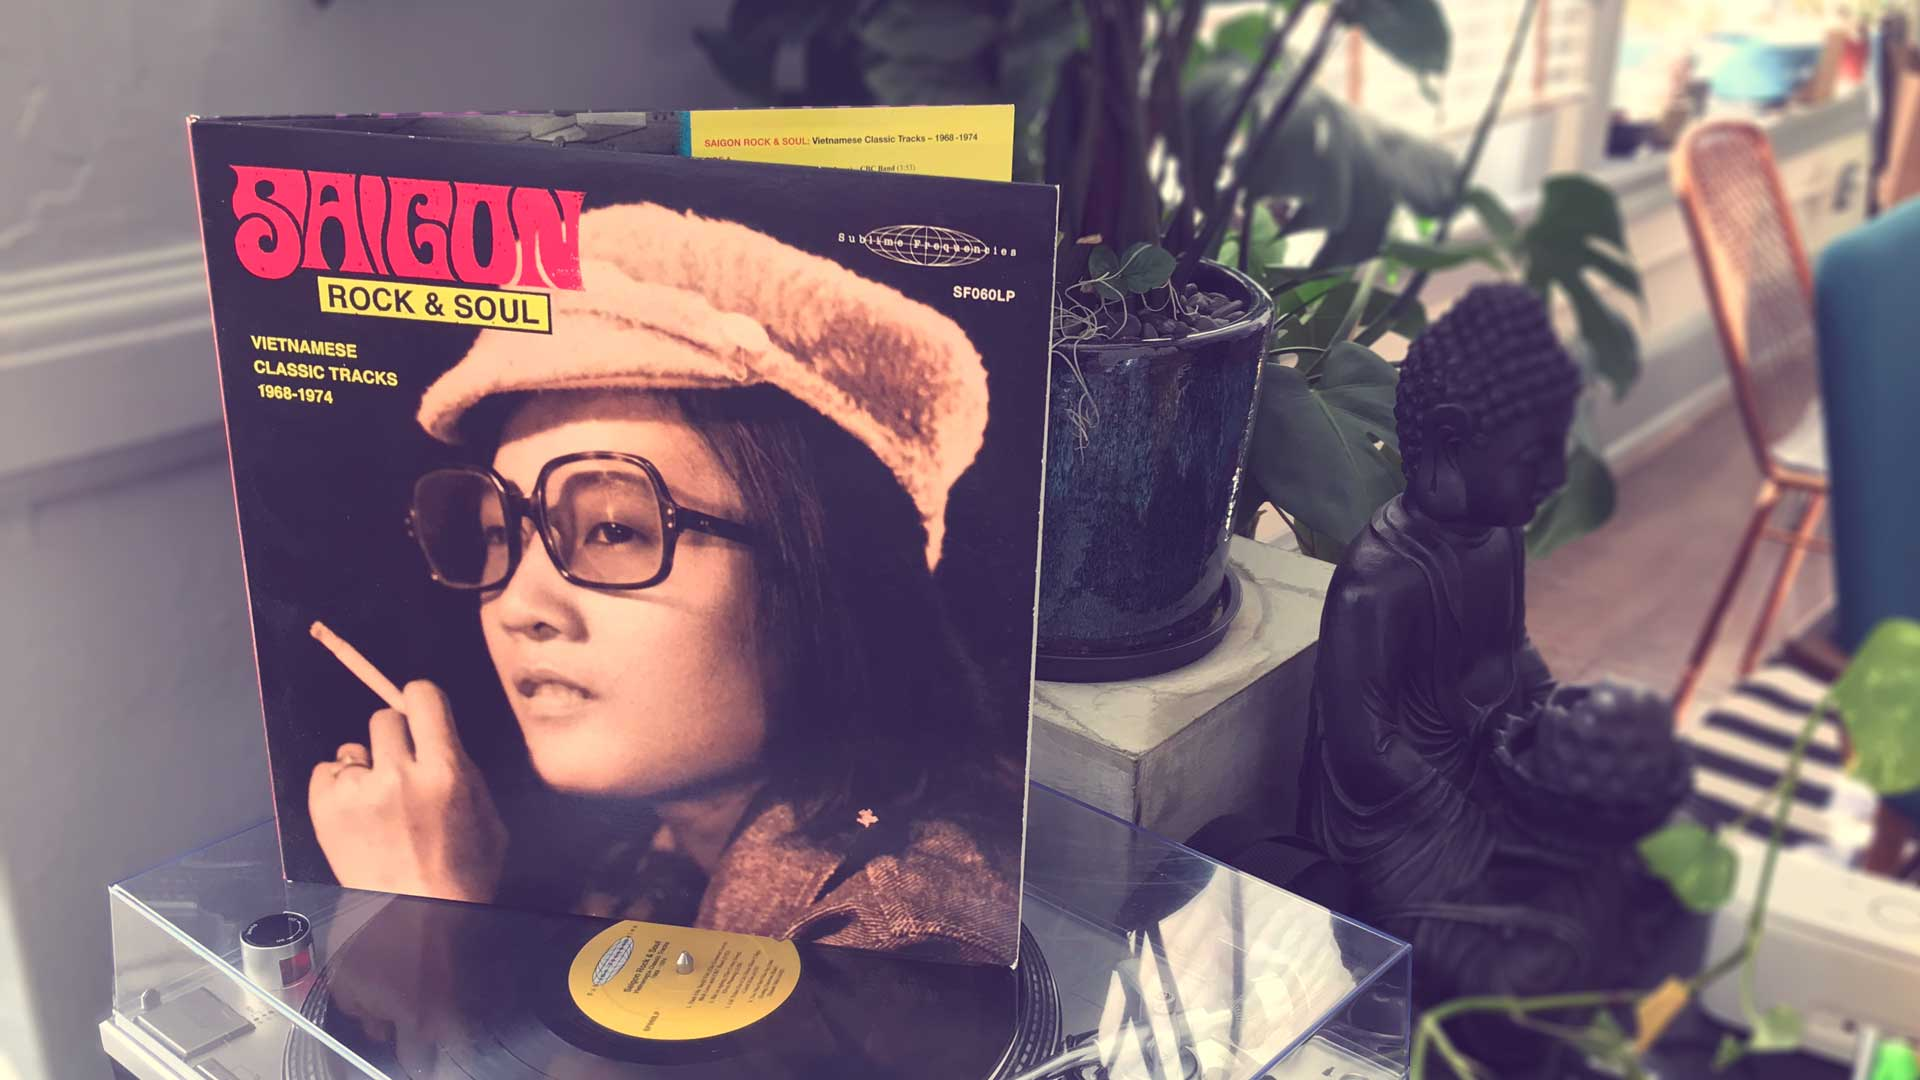 How Saigon Rock and Soul Inspired BAO